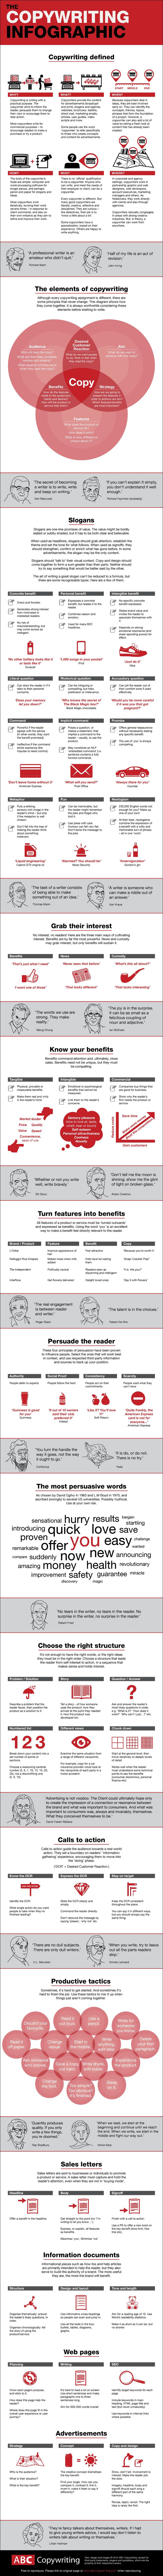 How to copywrite like a pro and grab the interest of your reader. It's almost a little checklist for your blog built into an #infographic